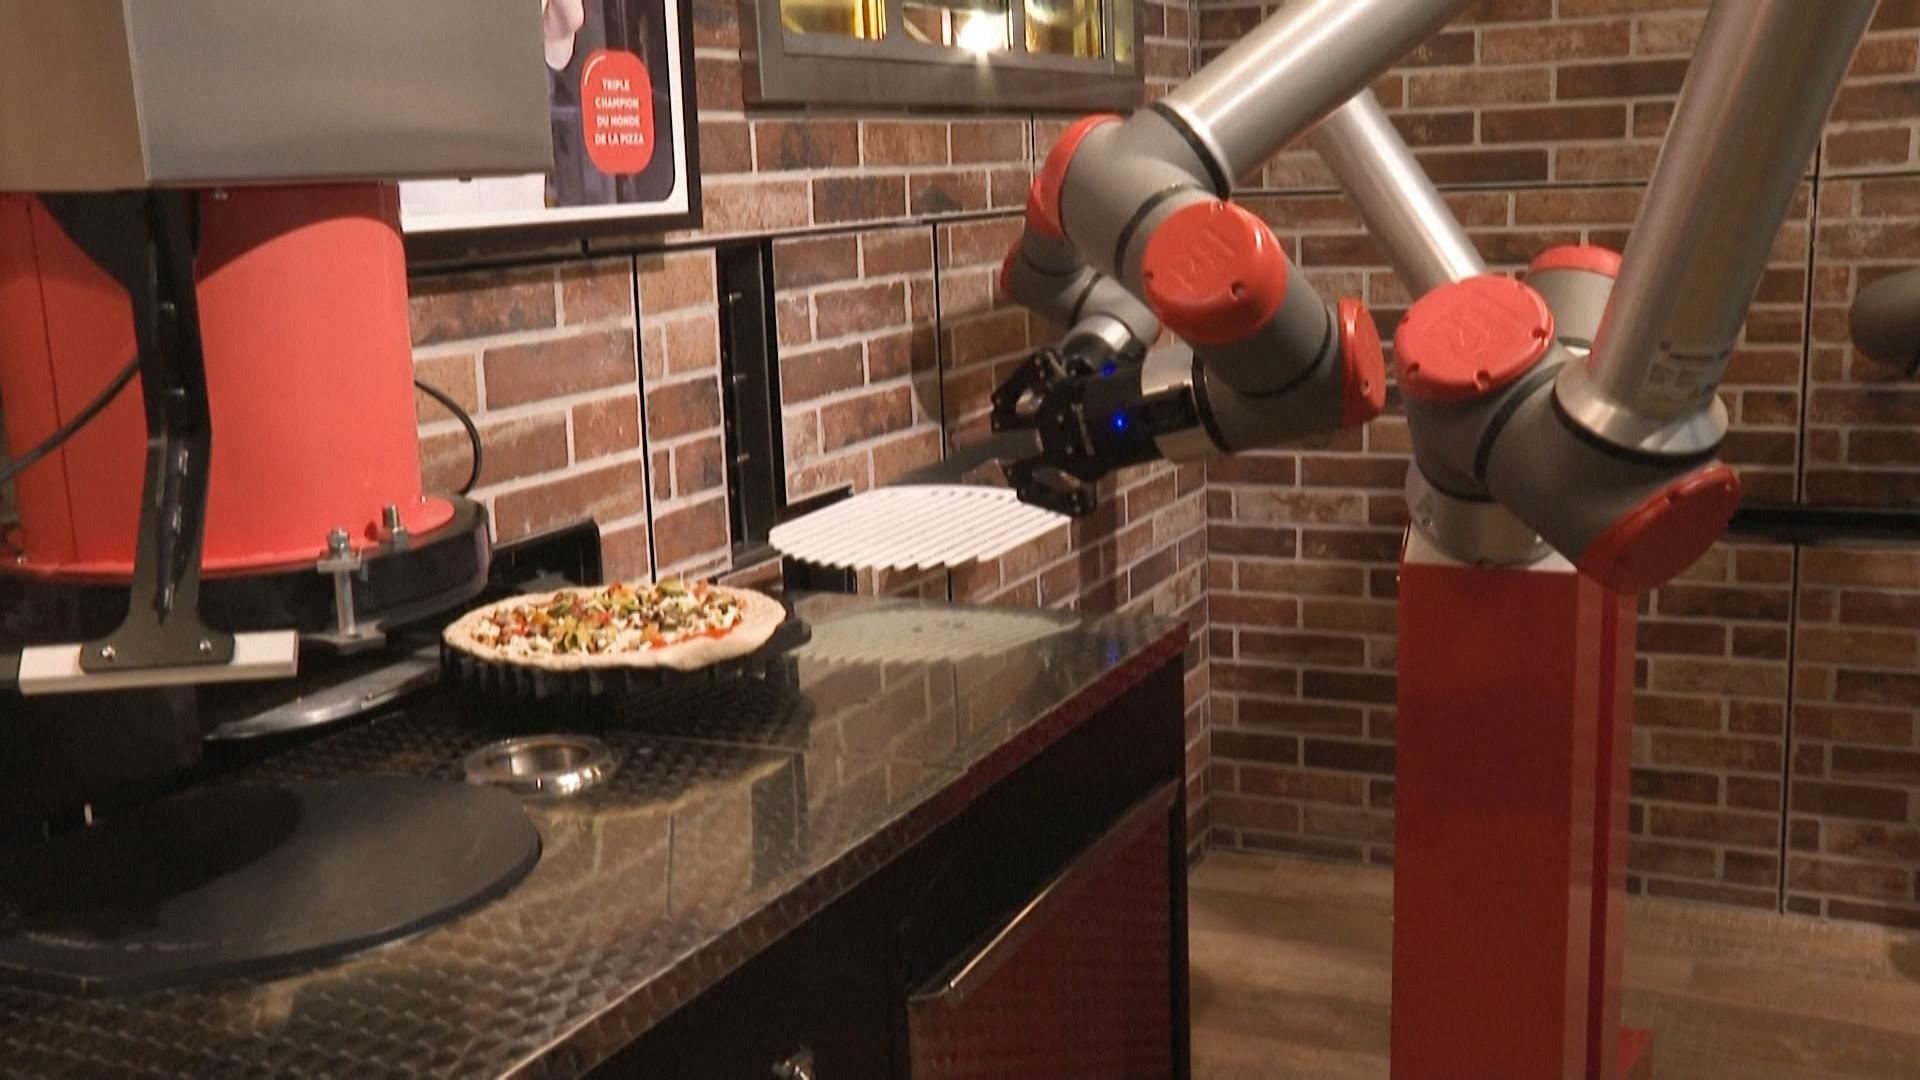 Pizza-making robot makes its debut in Paris | Euronews